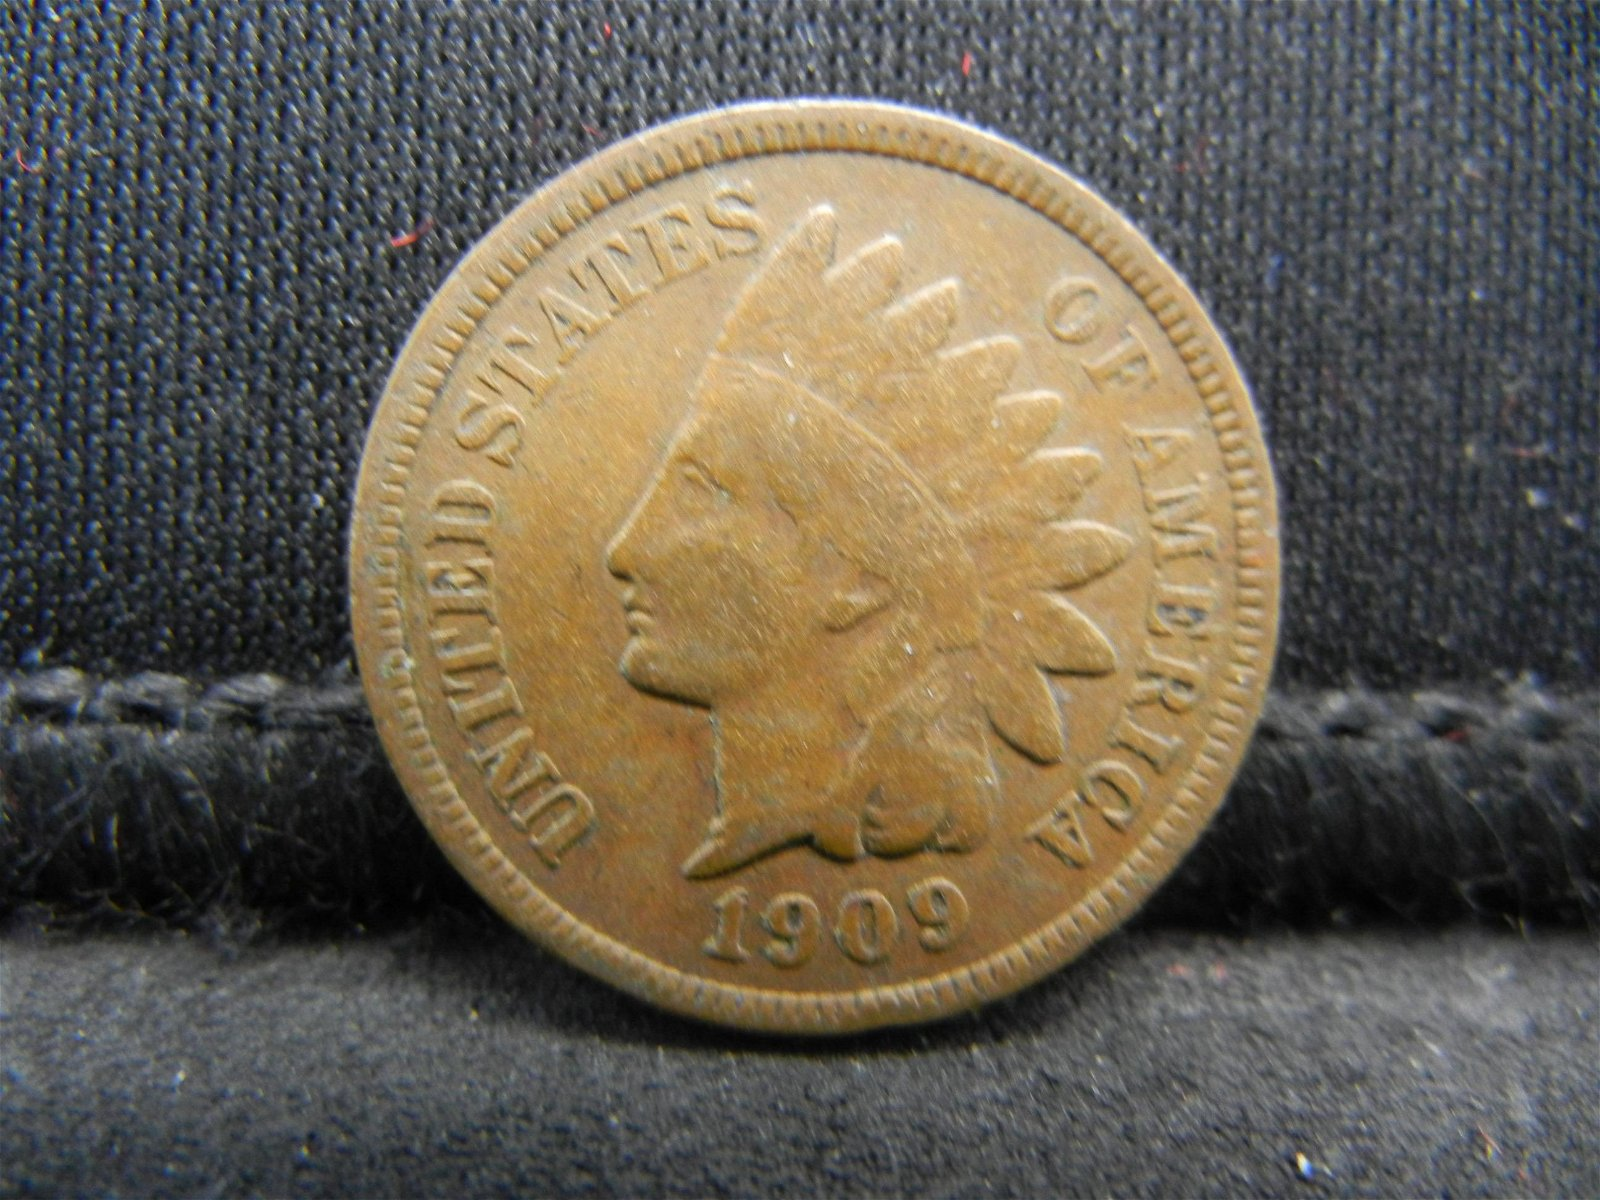 1909 United States Indian Head Penny Cent